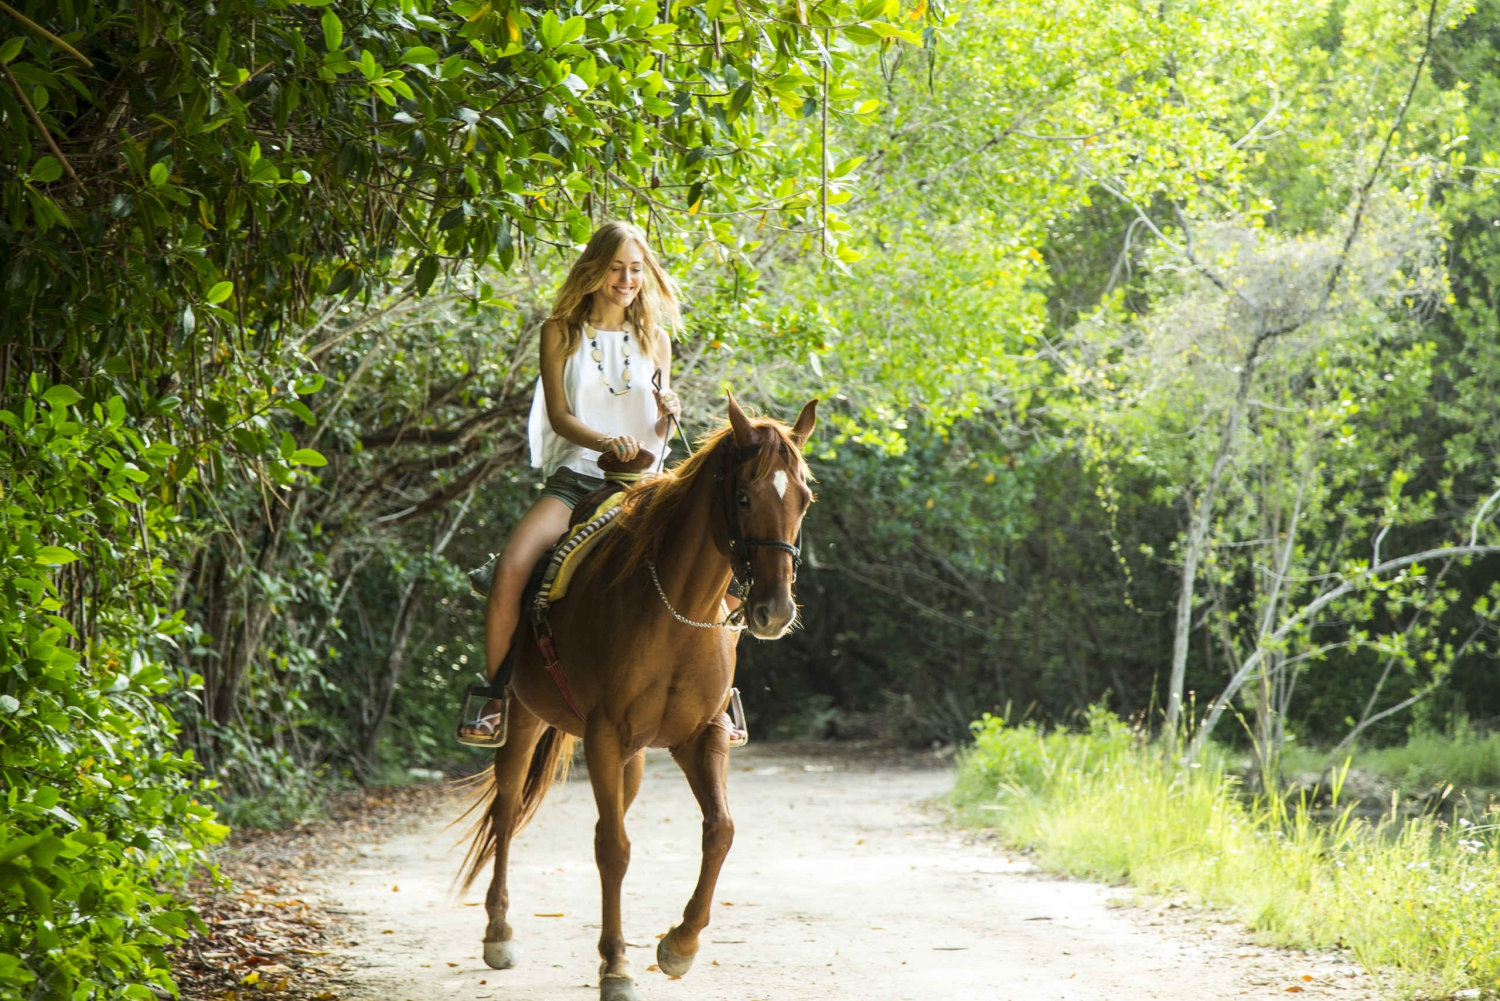 Horseback Riding in the Caribbean Jungle